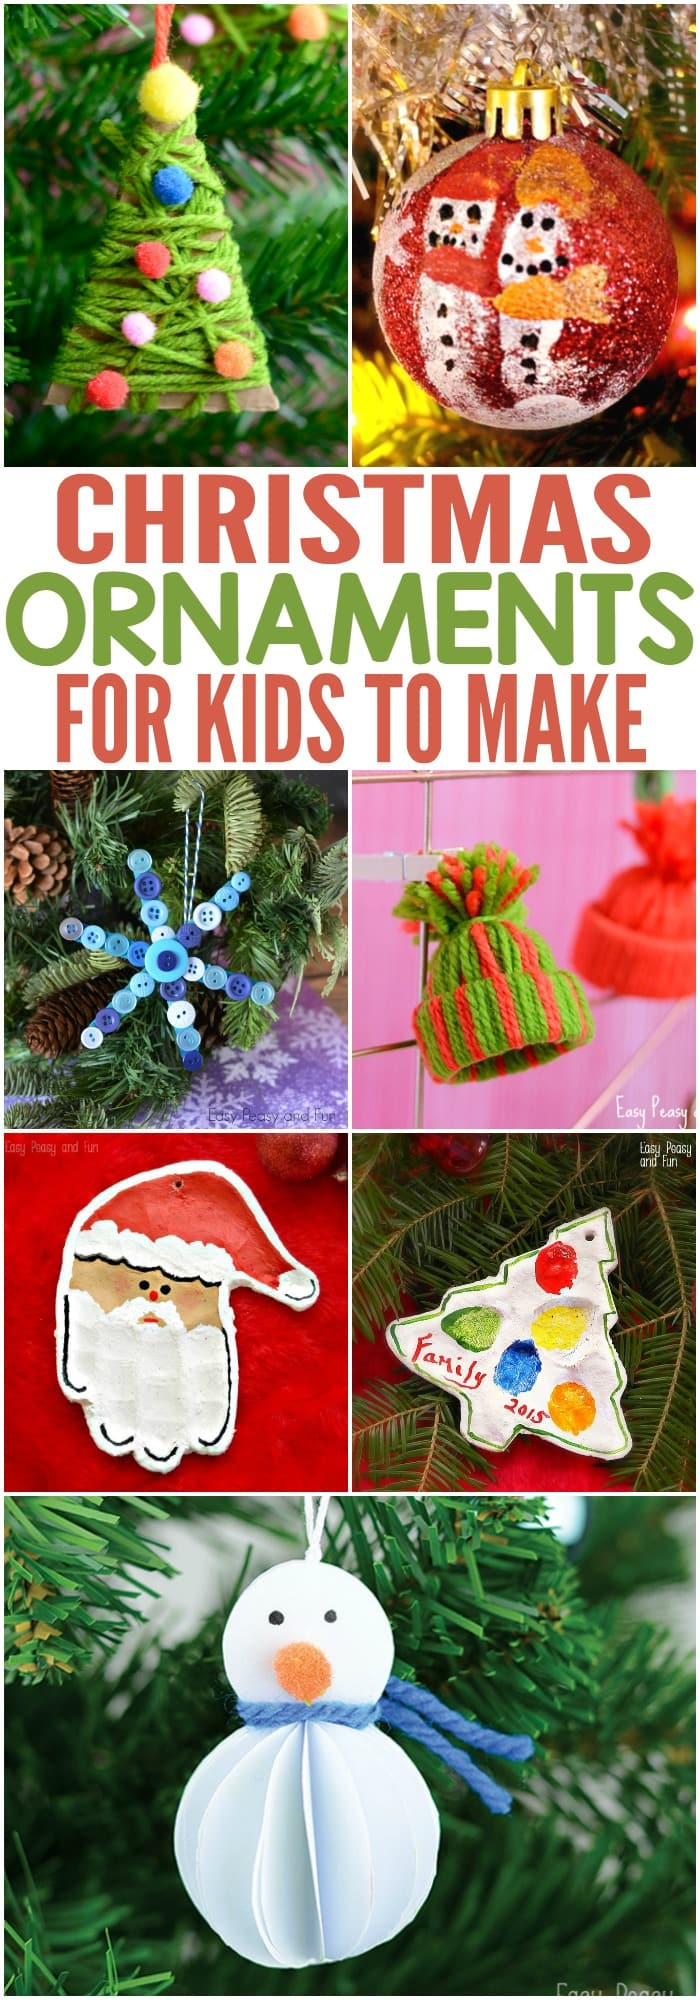 jolly diy christmas ornaments ideas homemade memories for kids - Christmas Decoration Craft Ideas